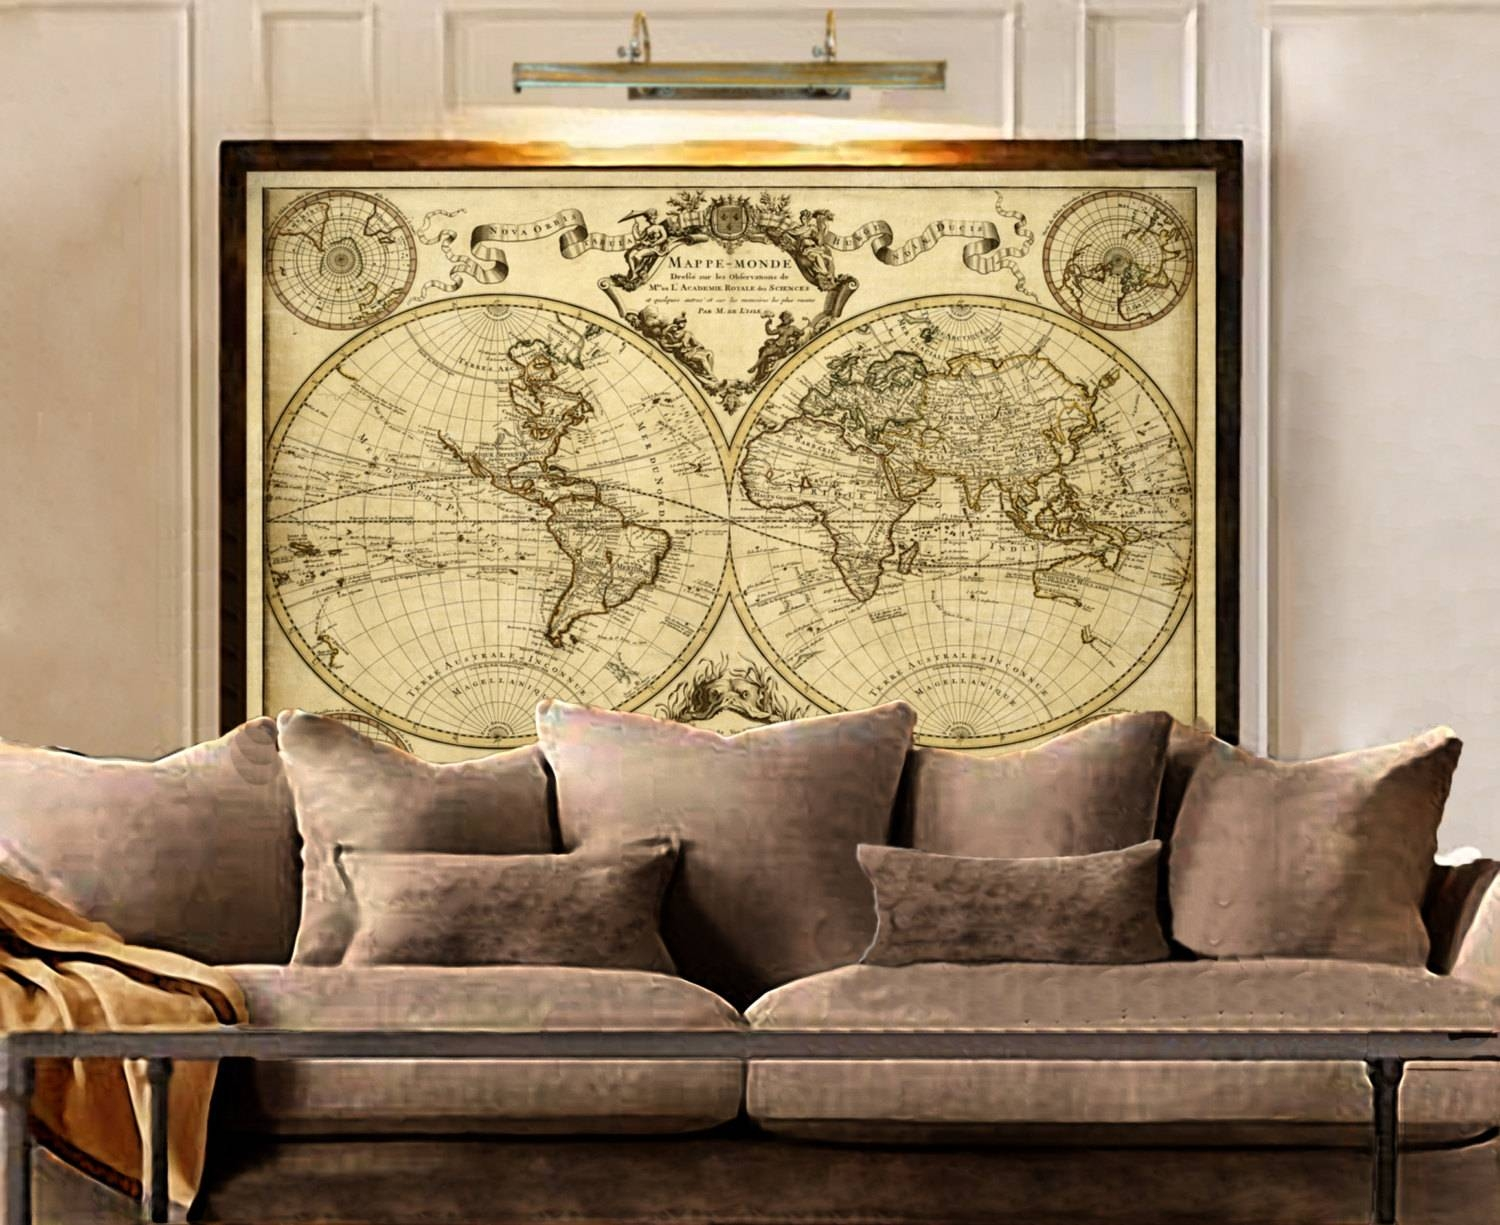 L'isle's 1720 Old World Map Historic Map Antique Style Inside 2017 World Map Wall Art Framed (View 7 of 20)